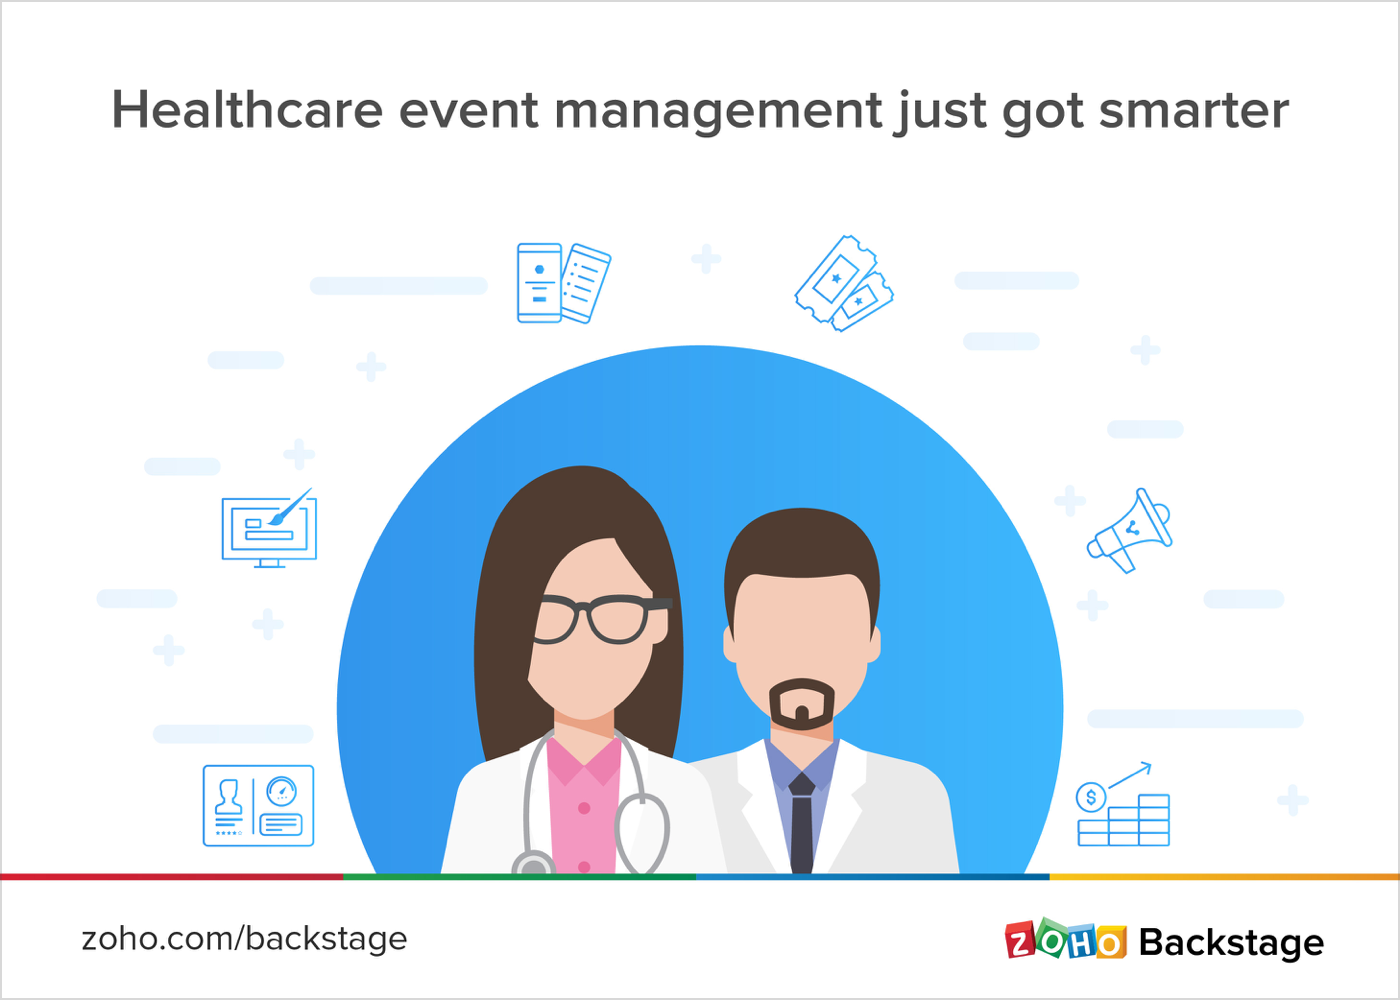 How Zoho Backstage can help you manage your healthcare events